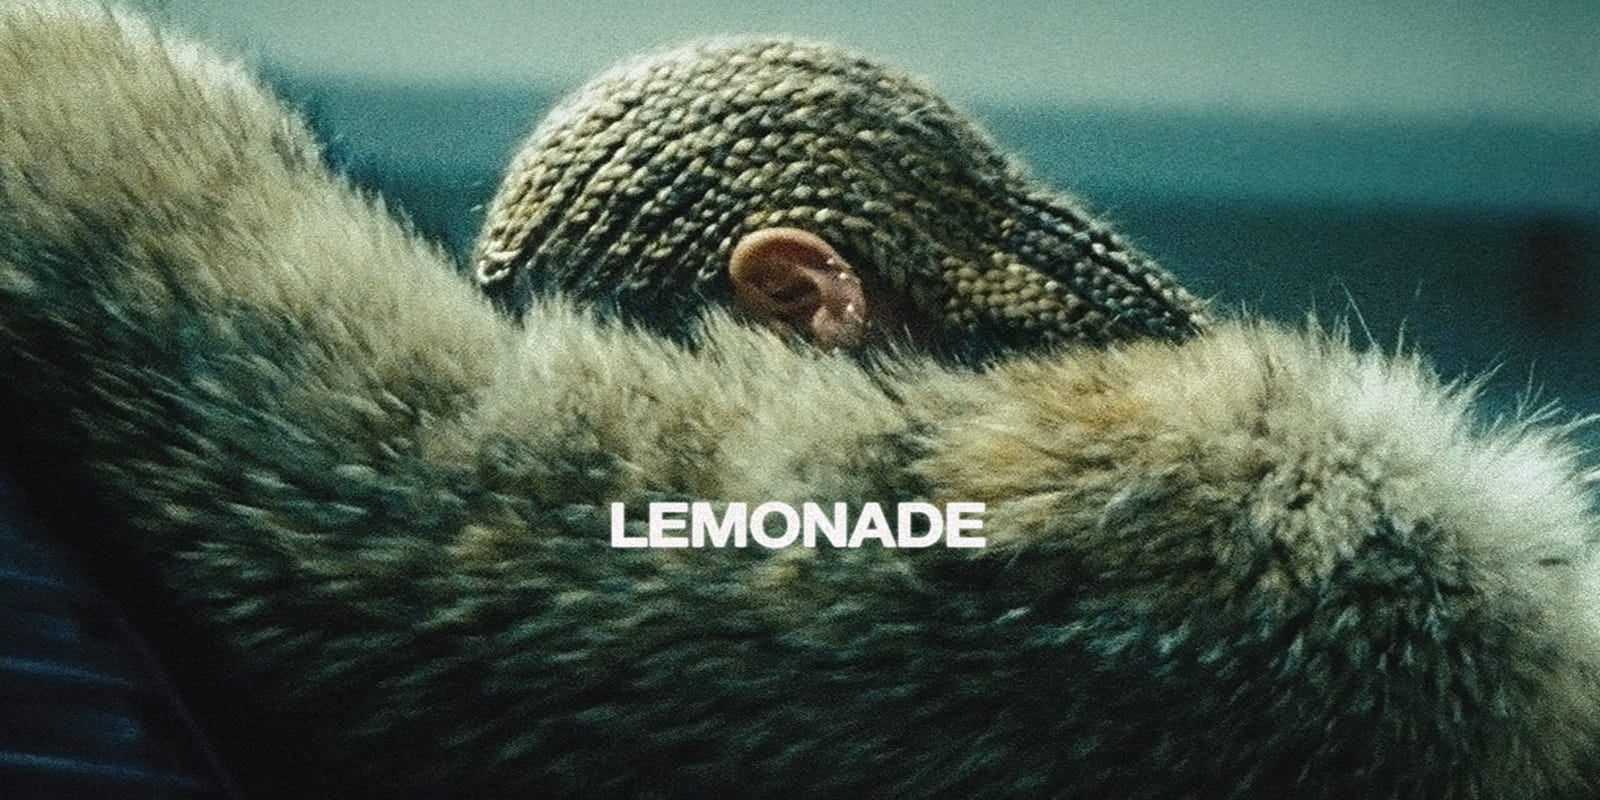 From Carole King's 'Tapestry' to Beyoncé's 'Lemonade': Albums with milestone anniversaries in 2021